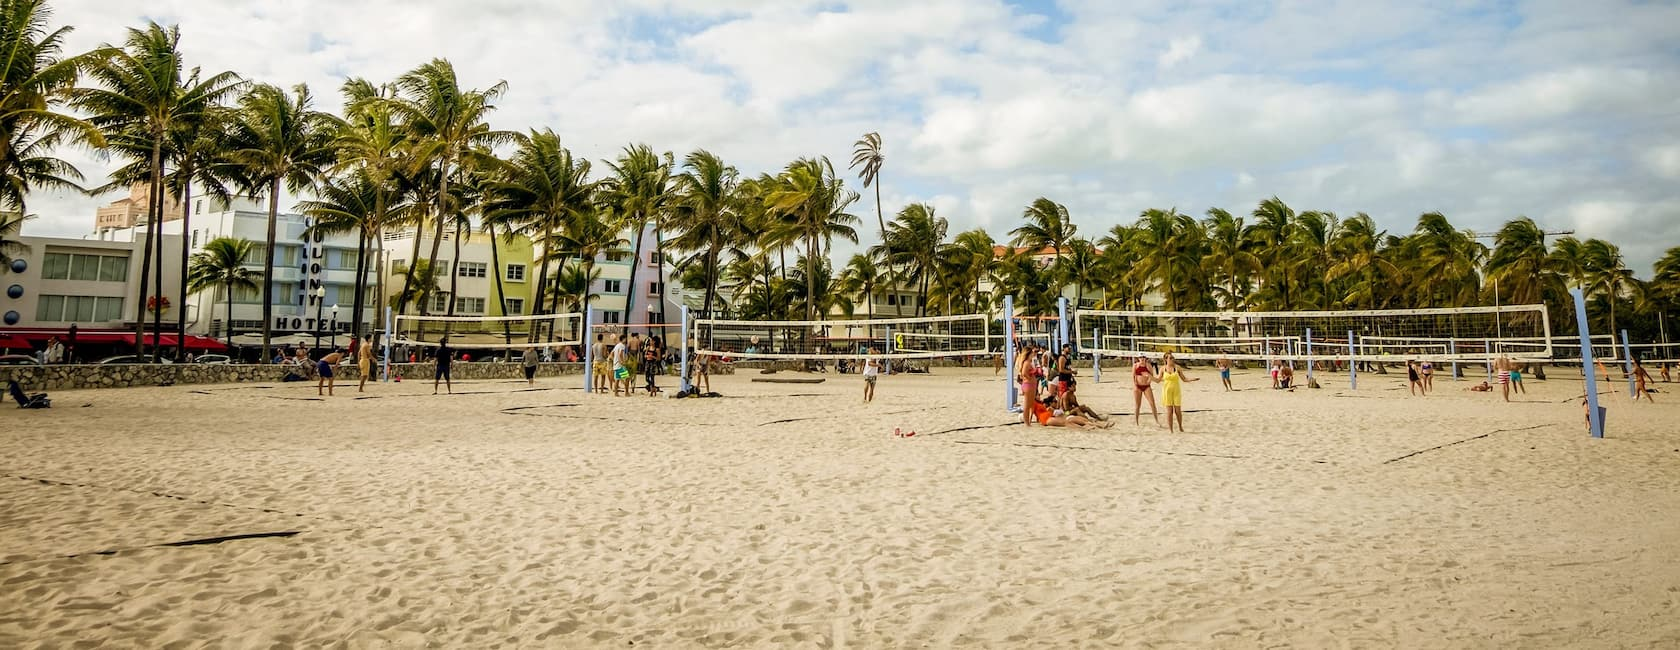 Alquileres vacacionales en South Beach, Miami Beach